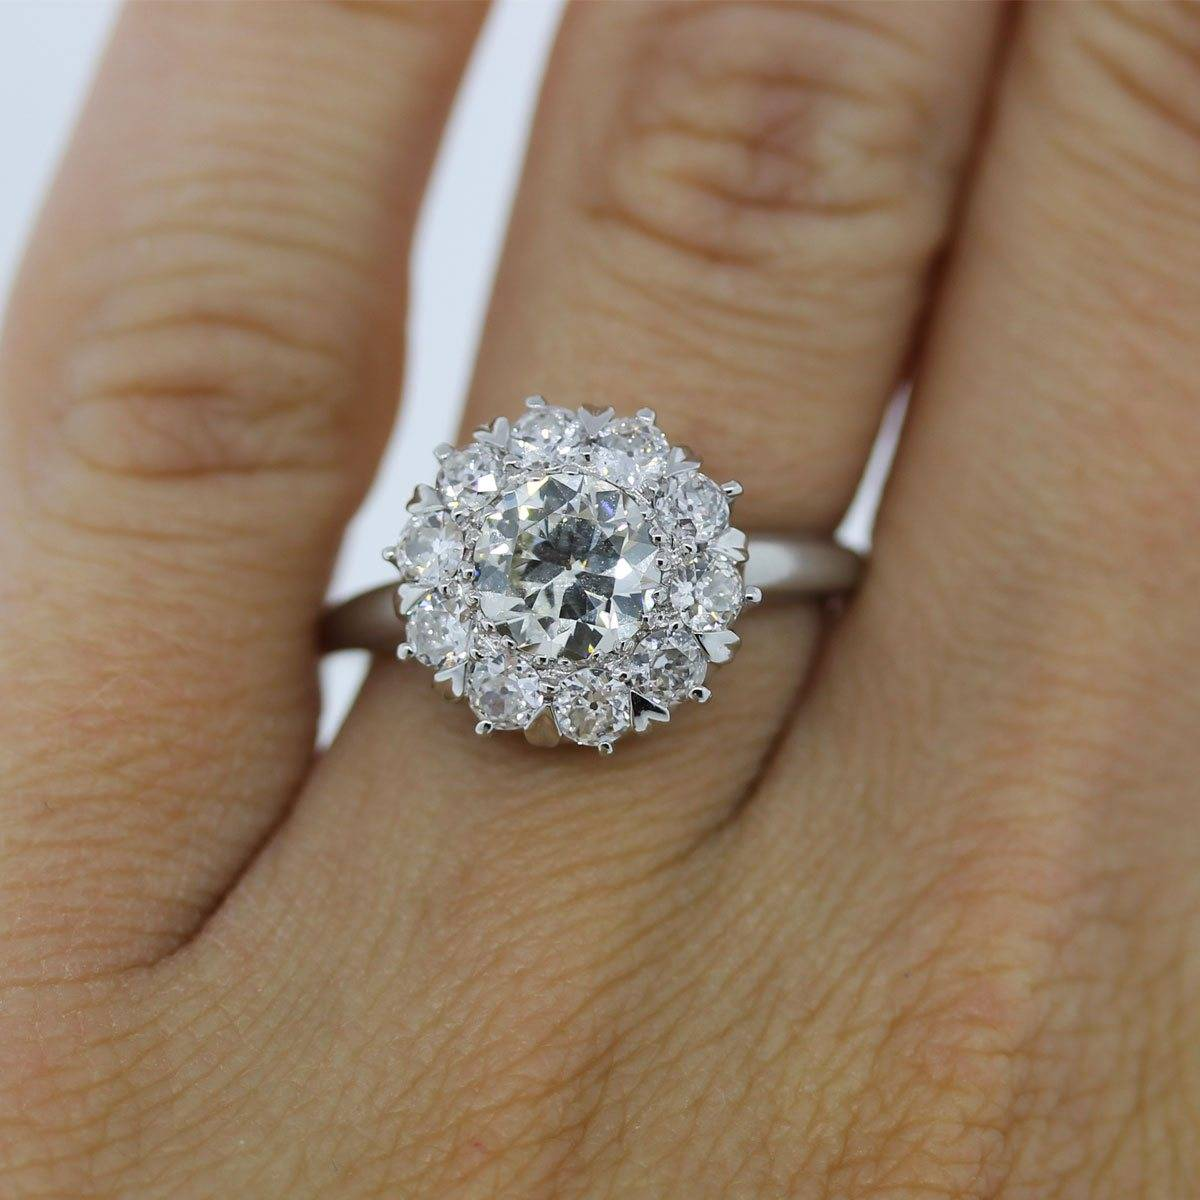 One Carat Solitaire Diamond Ring